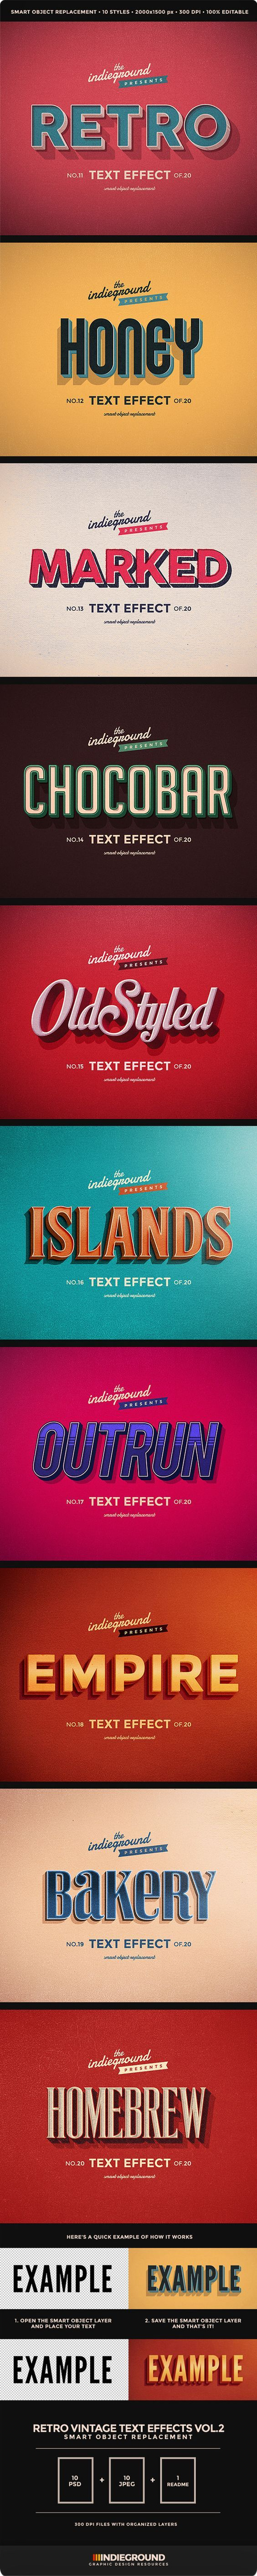 Retro Vintage Text Effects Vol. 2 - TF